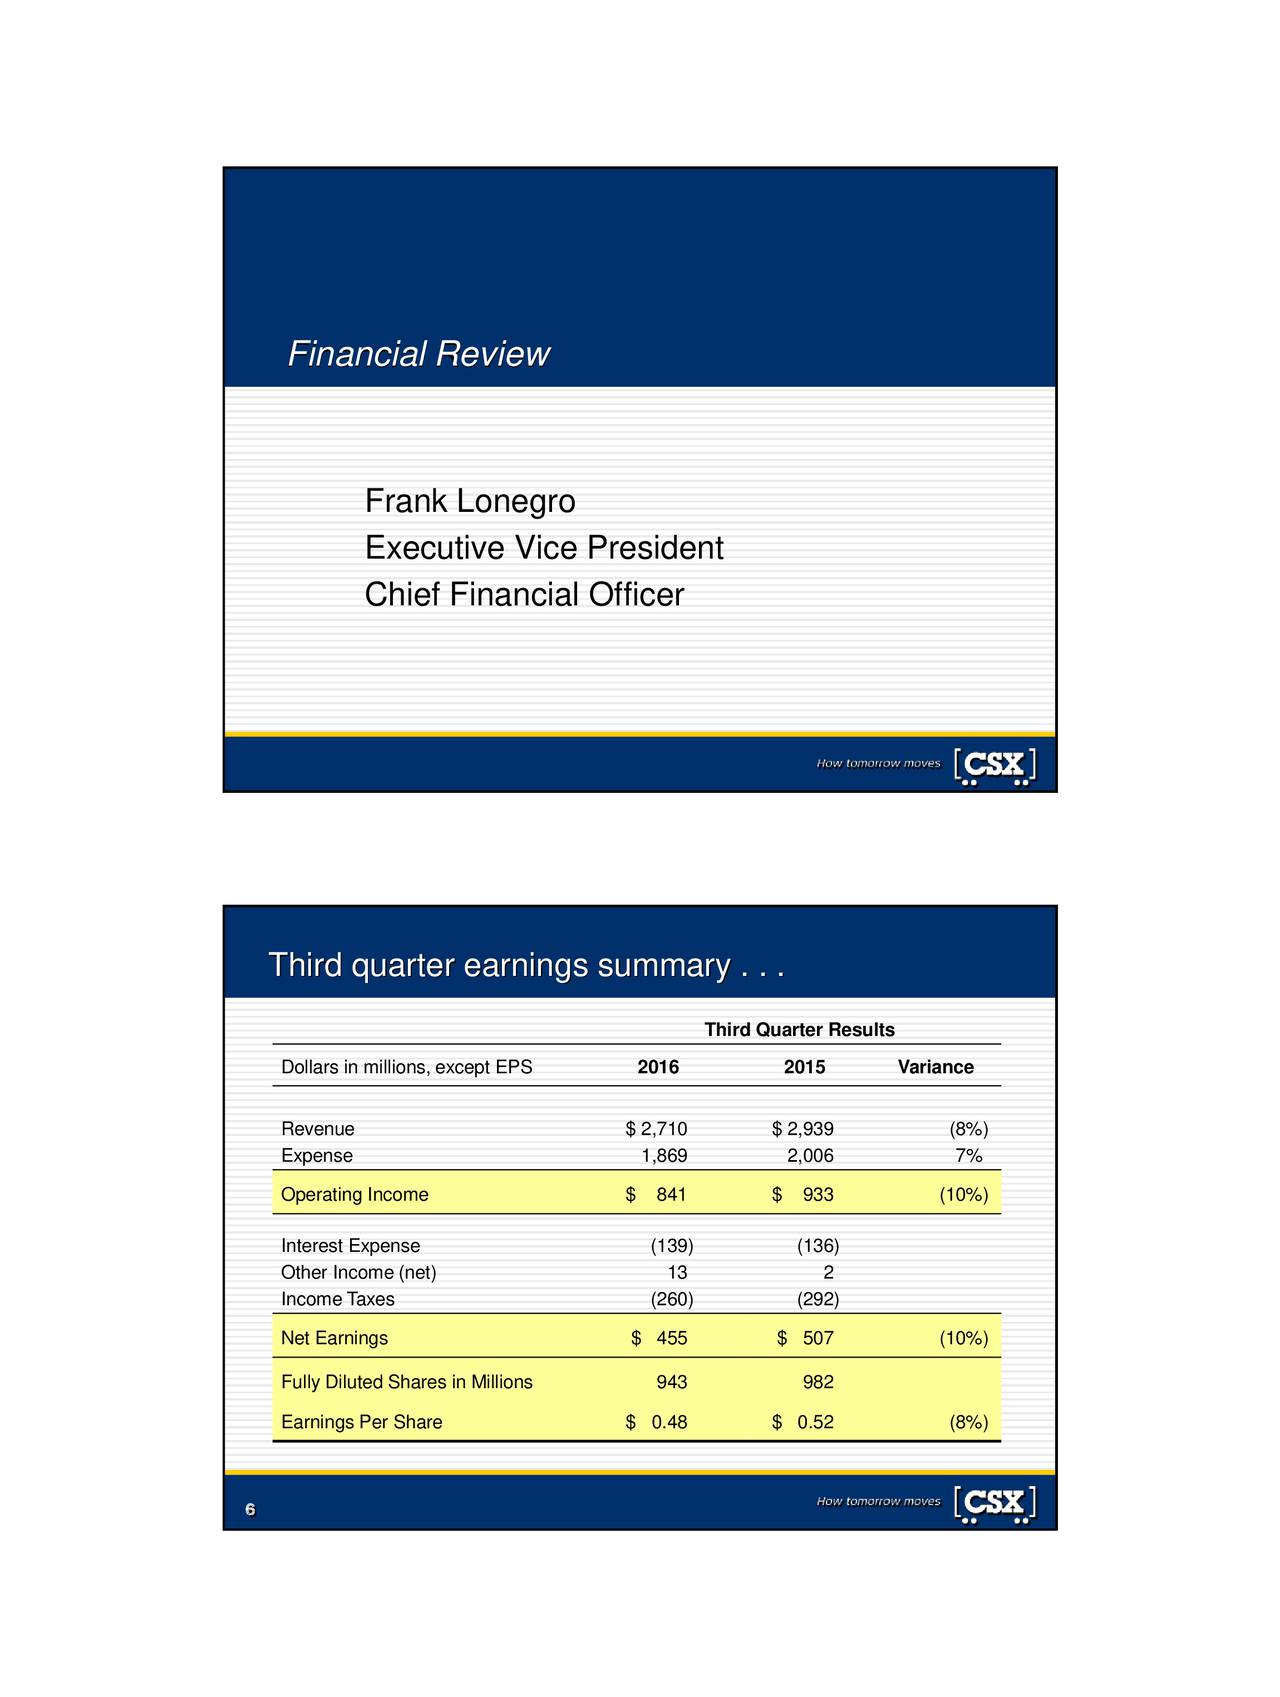 Frank Lonegro Executive Vice President Chief Financial Officer Third quarter earnings summary . . . Third Quarter Results Dollars in millions, except EPS 2016 2015 Variance Revenue $ 2,710 $ 2,939 (8%) Expense 1,869 2,006 7% Operating Income $ 841 $ 933 (10%) Interest Expense (139) (136) Other Income (net) 13 2 Income Taxes (260) (292) Net Earnings $ 455 $ 507 (10%) Fully Diluted Shares in Millions 943 982 Earnings Per Share $ 0.48 $ 0.52 (8%) 6